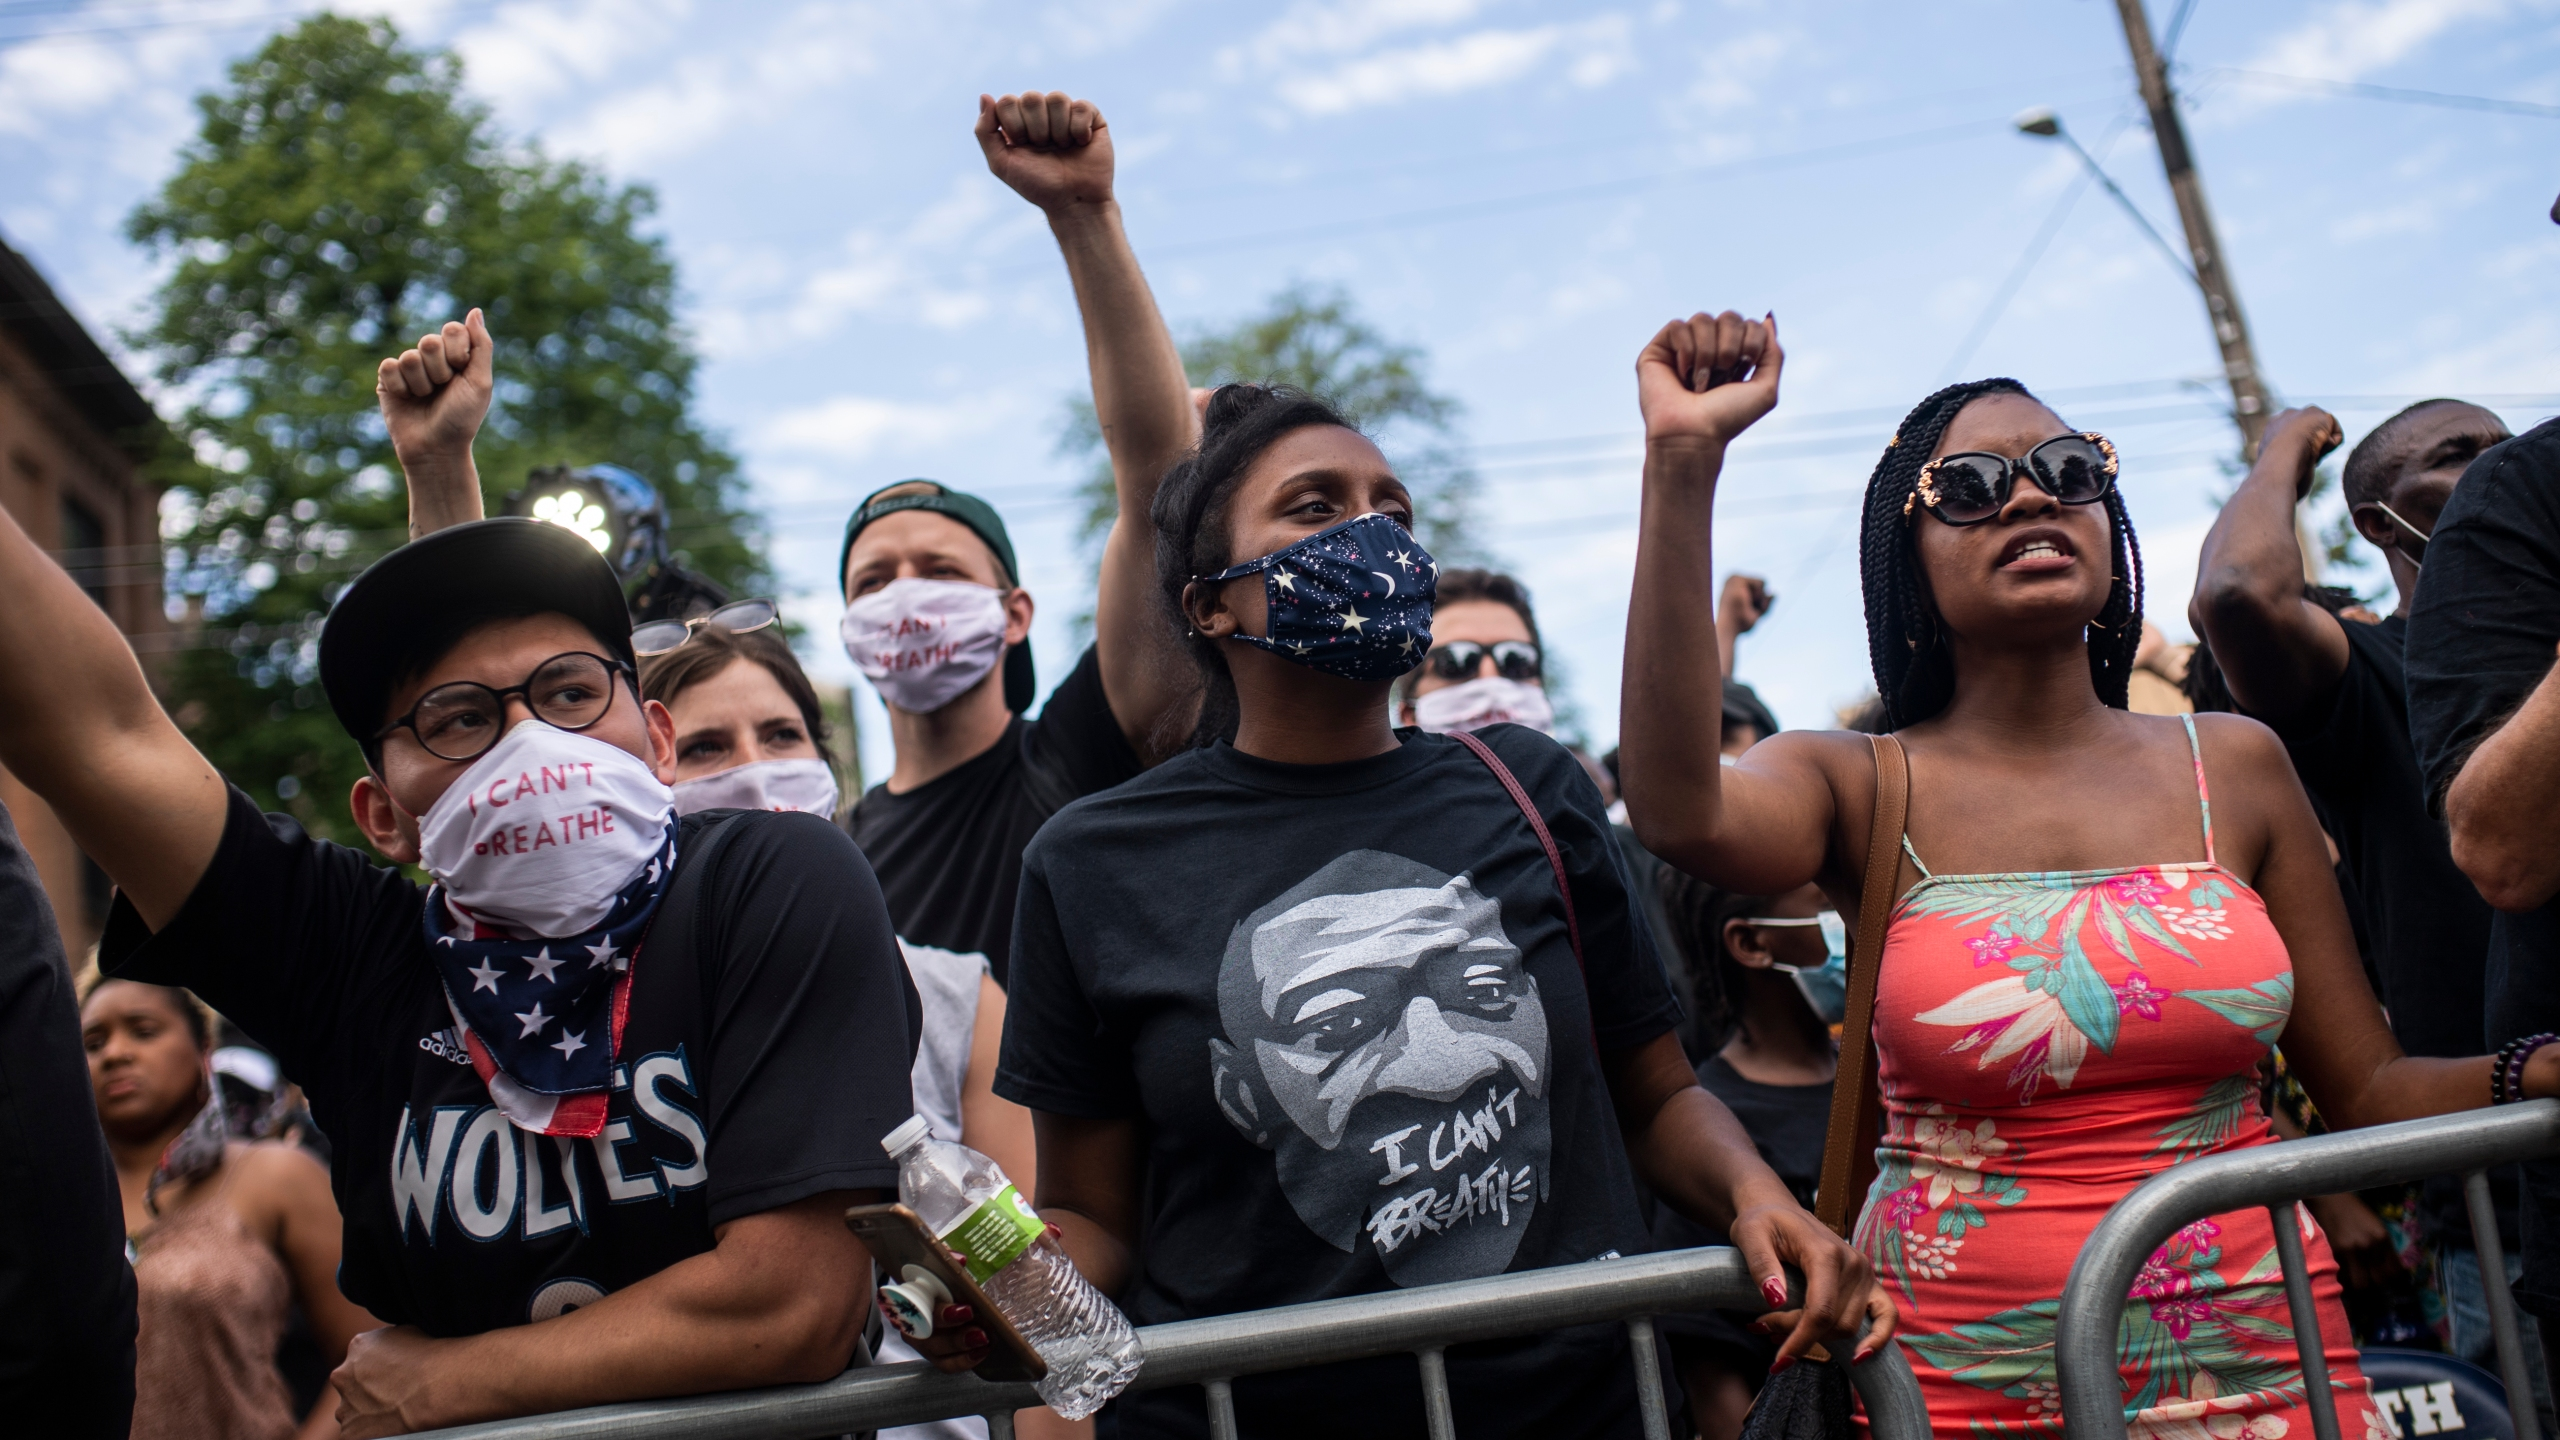 A group of people chant George Floyd's name outside a memorial service at North Central University in Minneapolis on June 4, 2020. (Stephen Maturen/Getty Images)